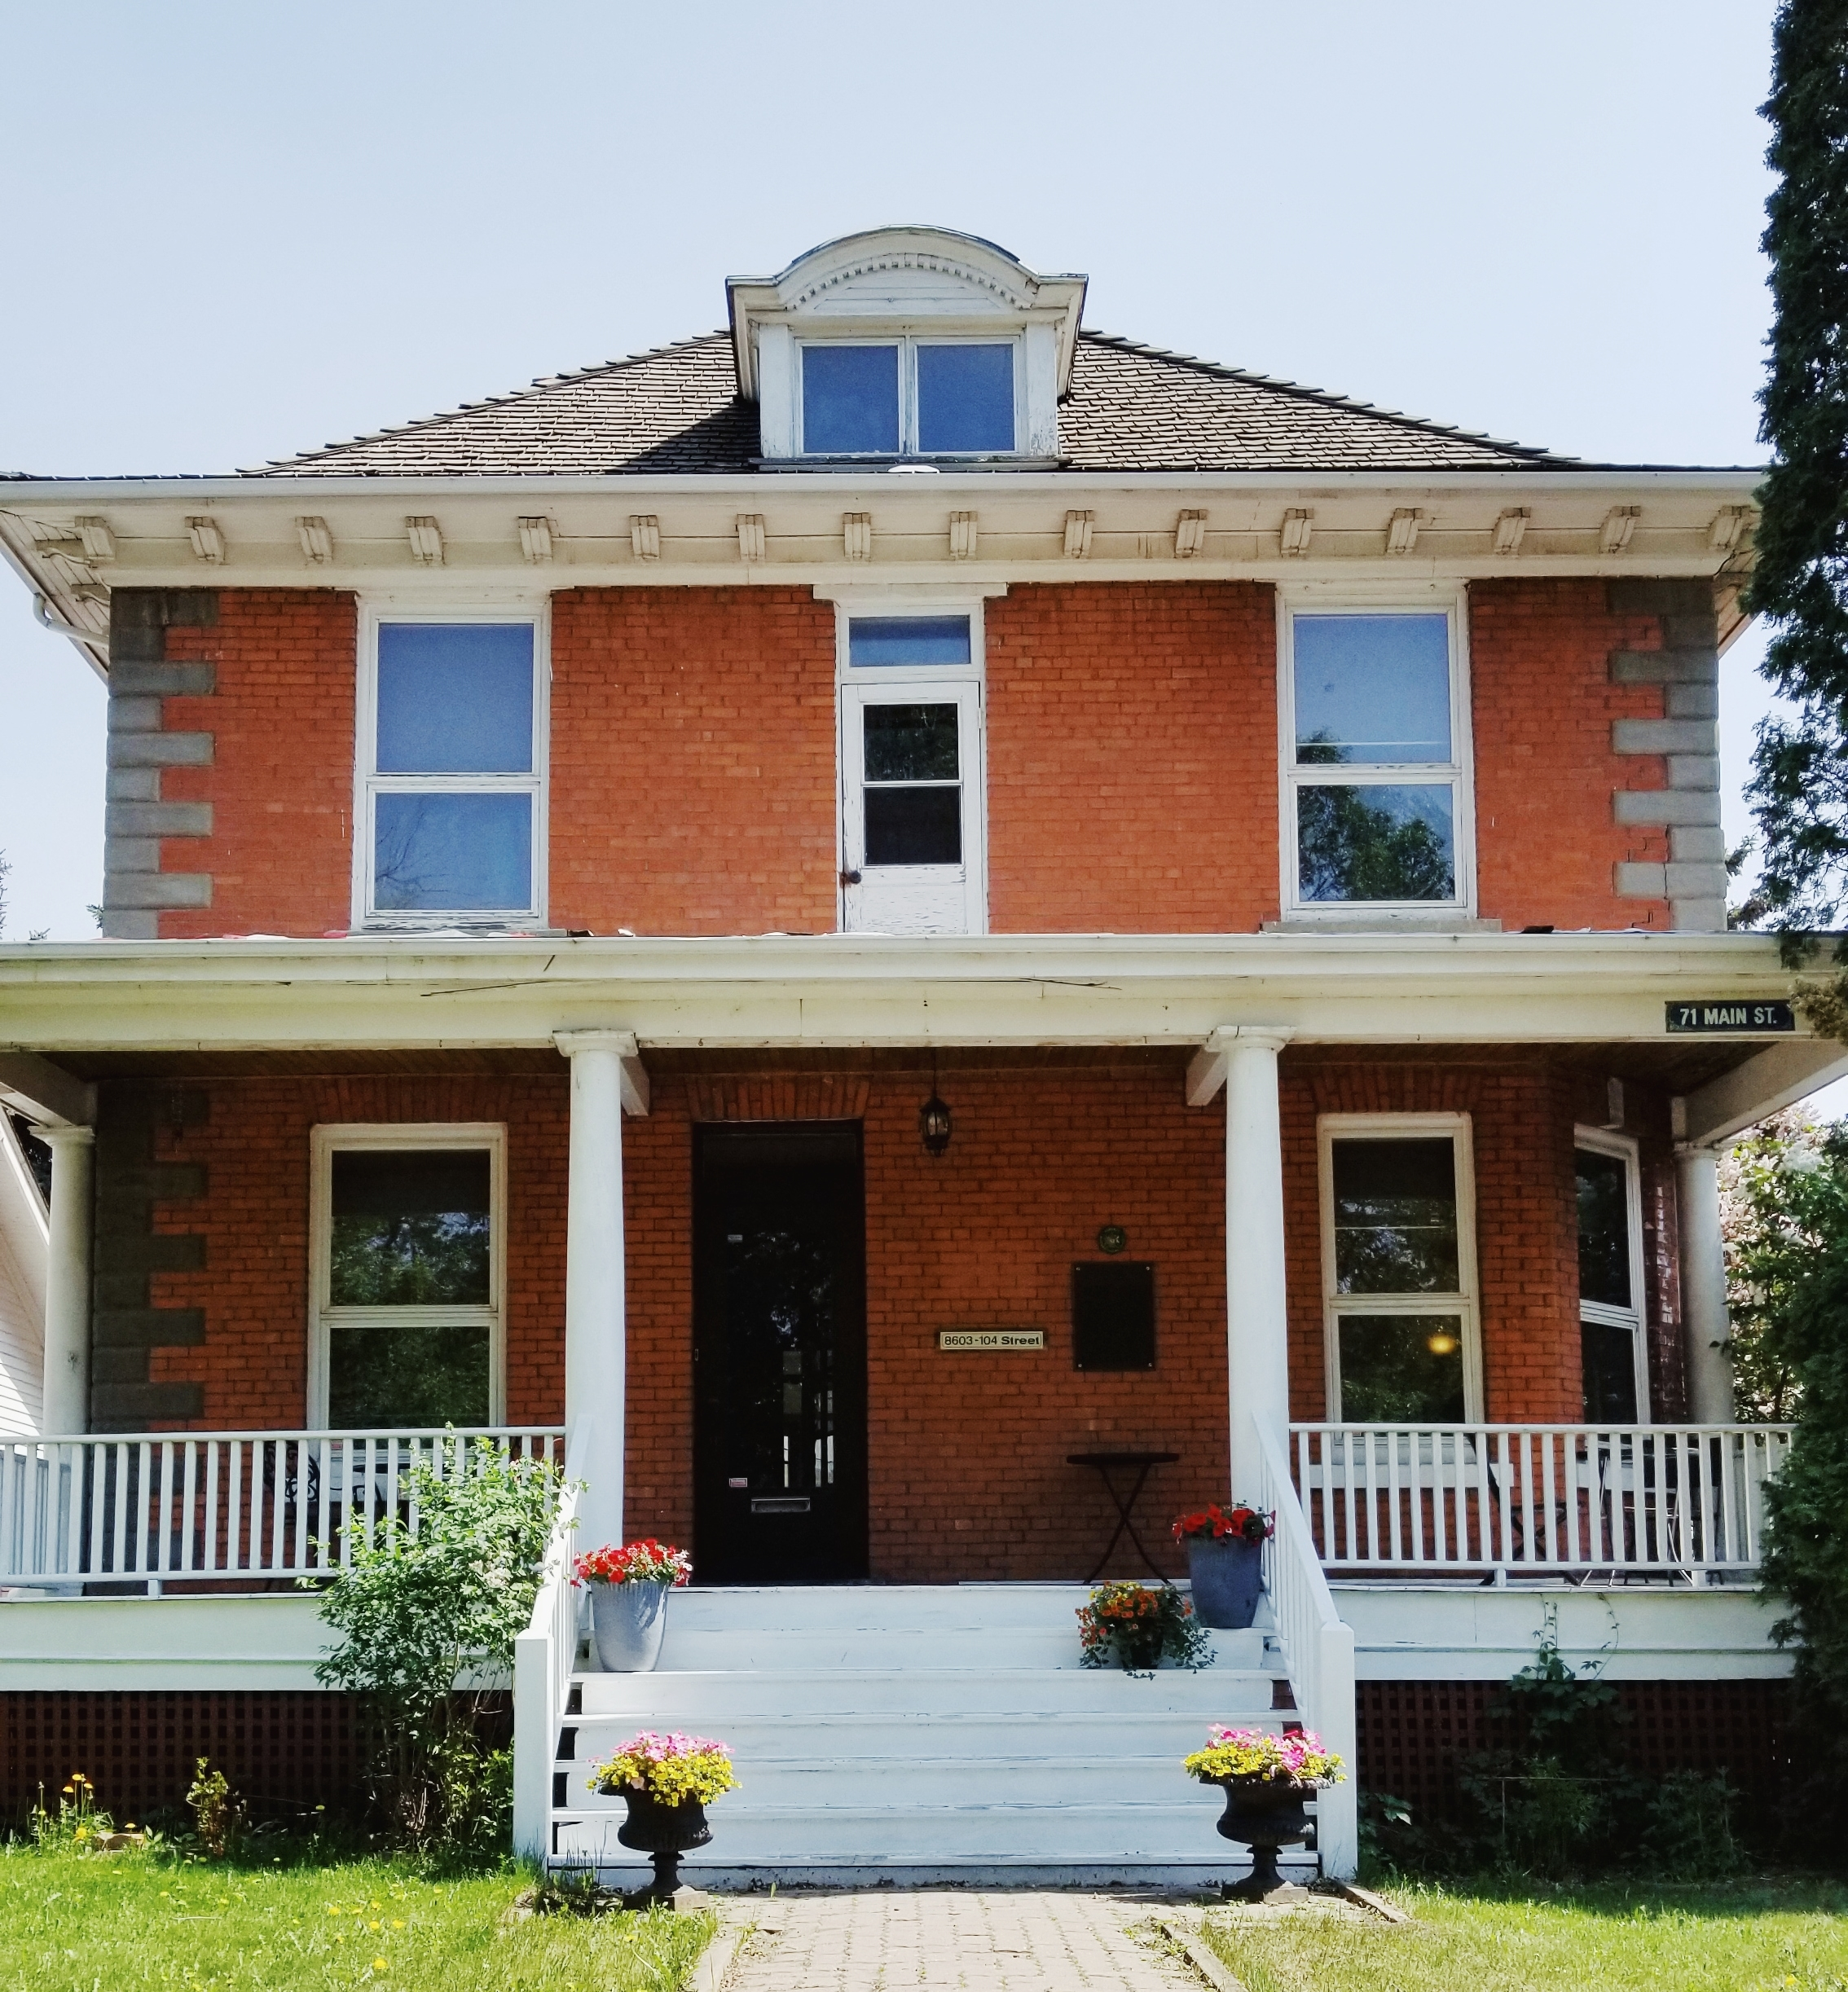 McKenzie Residence front view